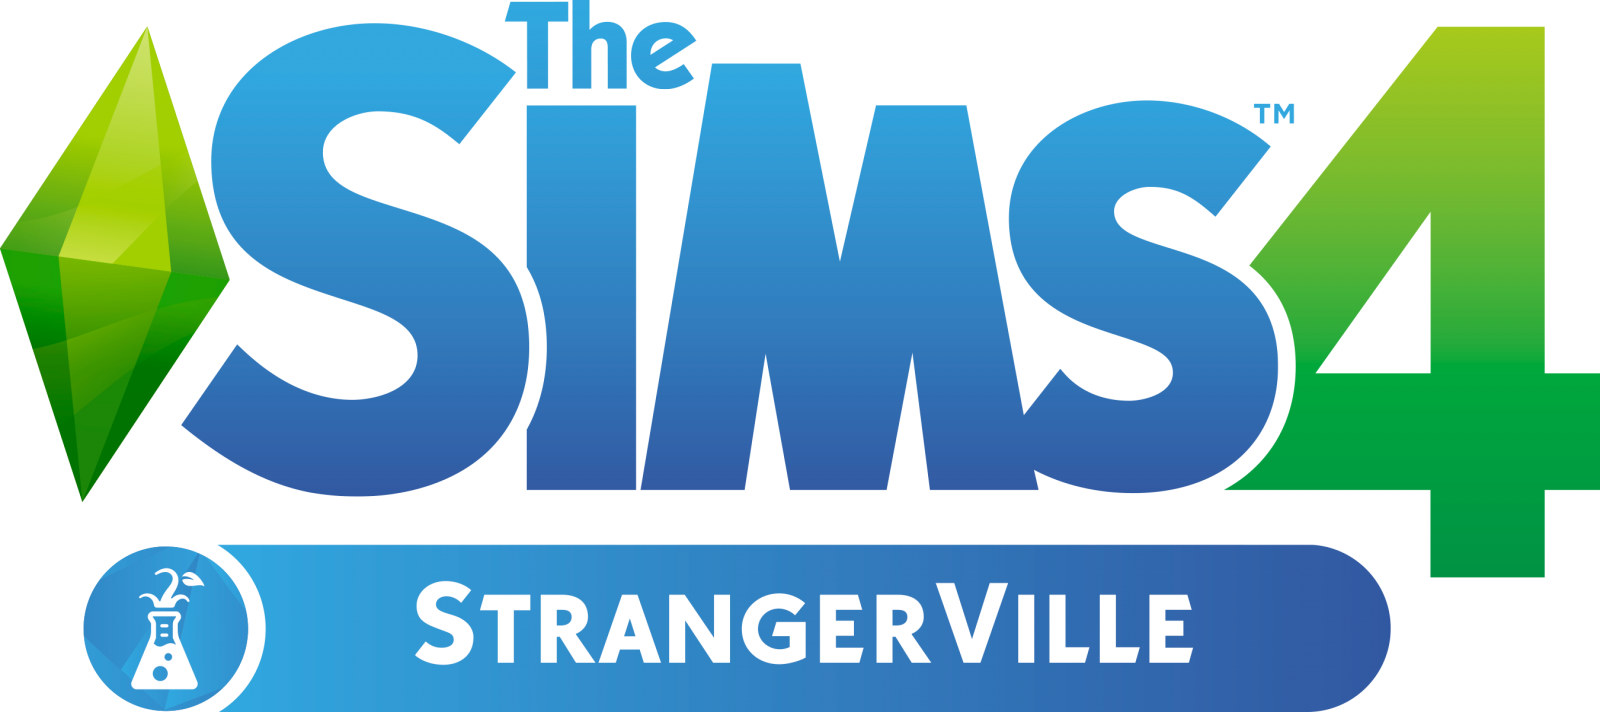 sims-4-logo-pack-jeu-gamepack-strangerville-english-01 (2).png